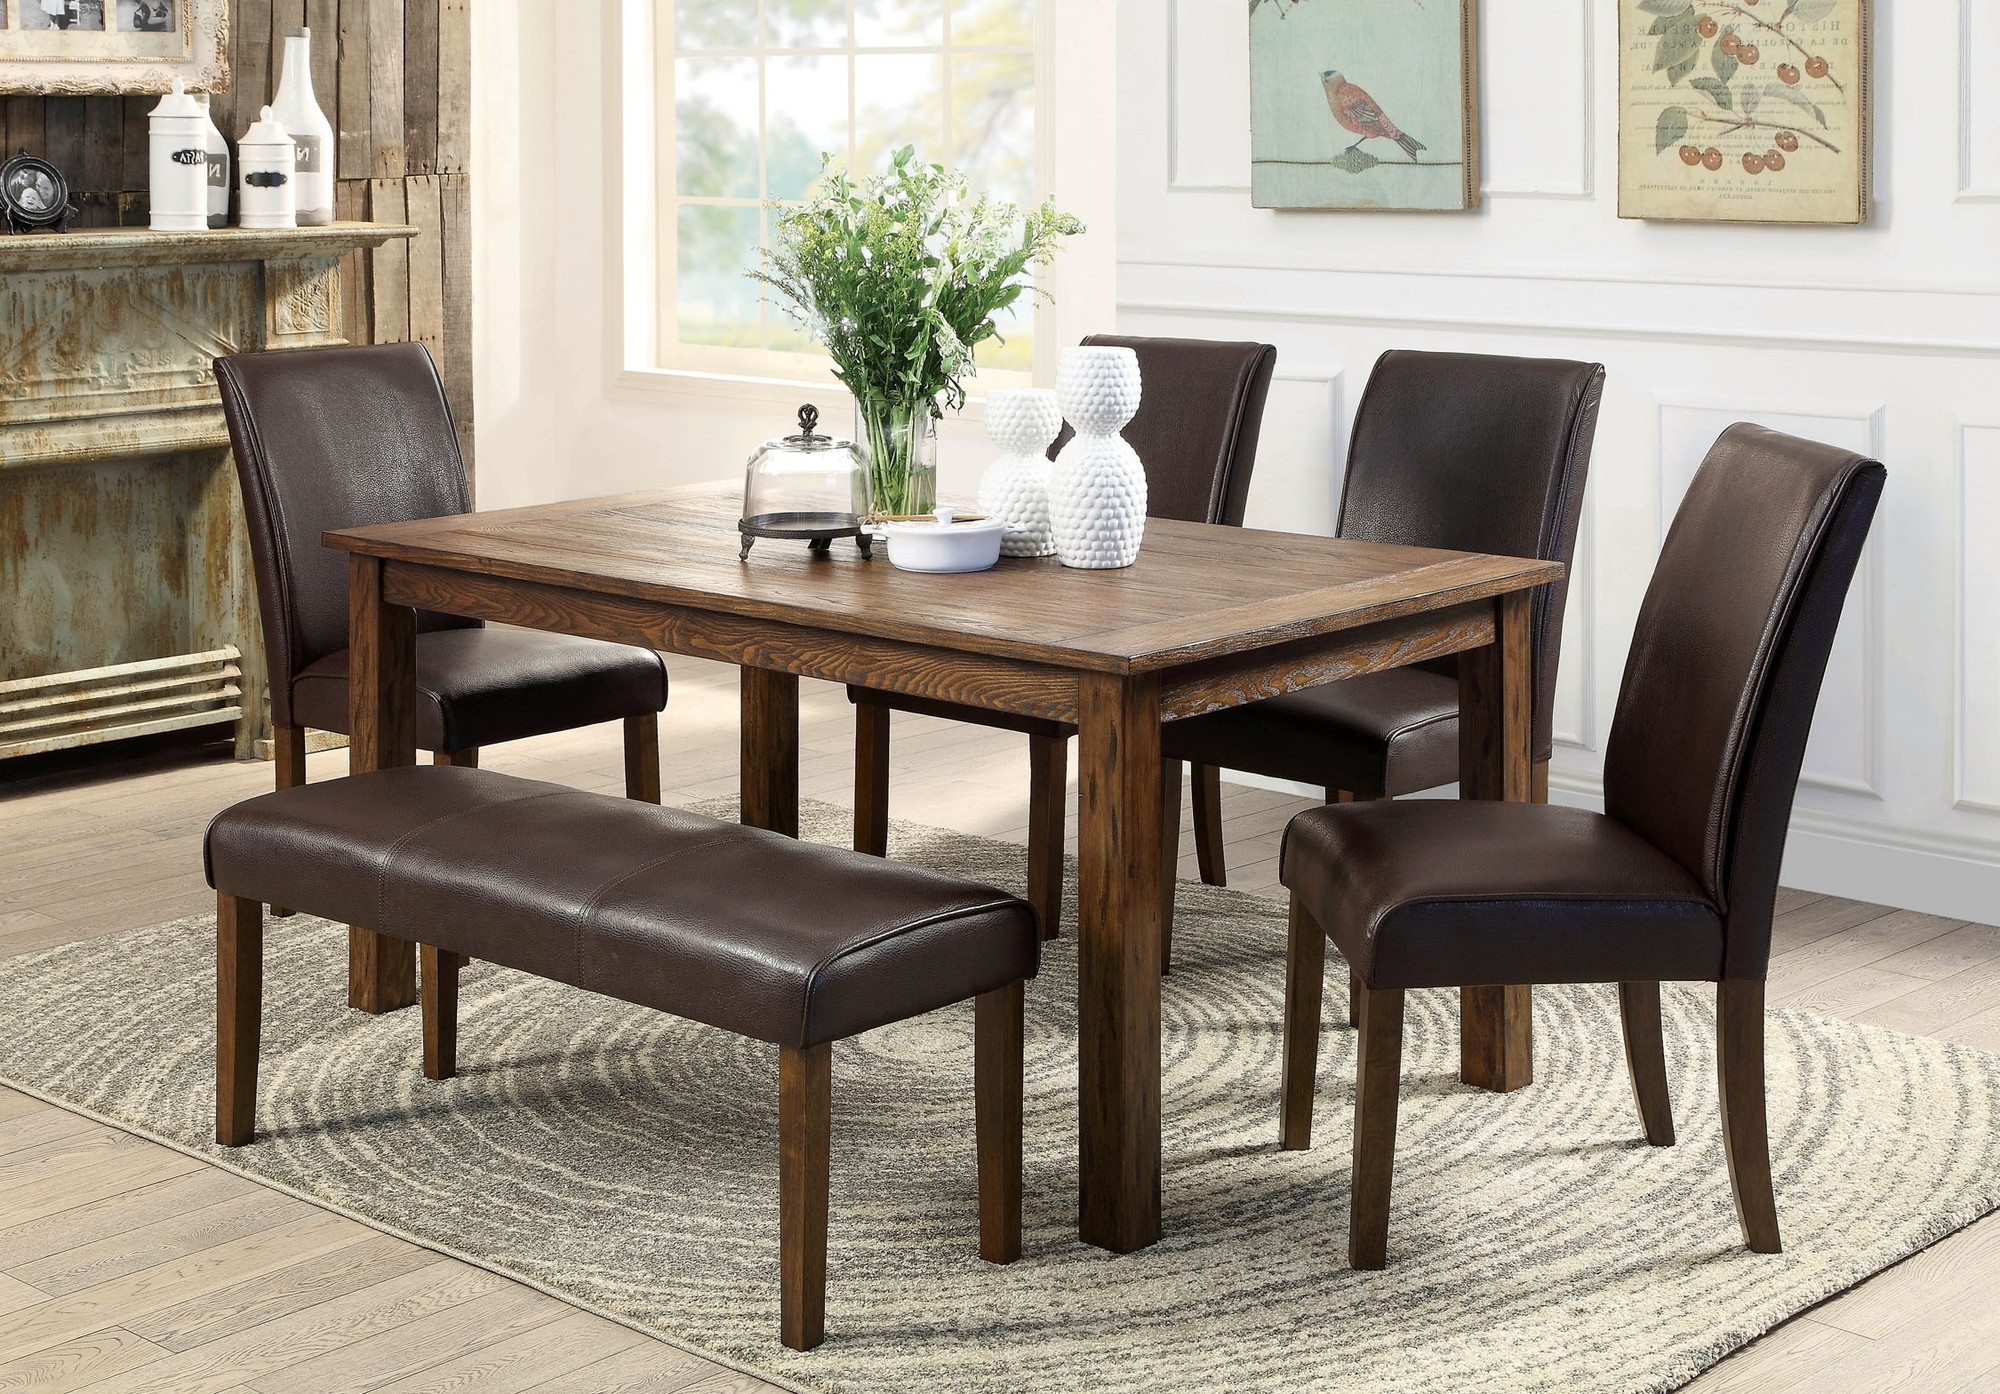 Homesfeed With Rectangular Dining Tables Sets (View 9 of 25)